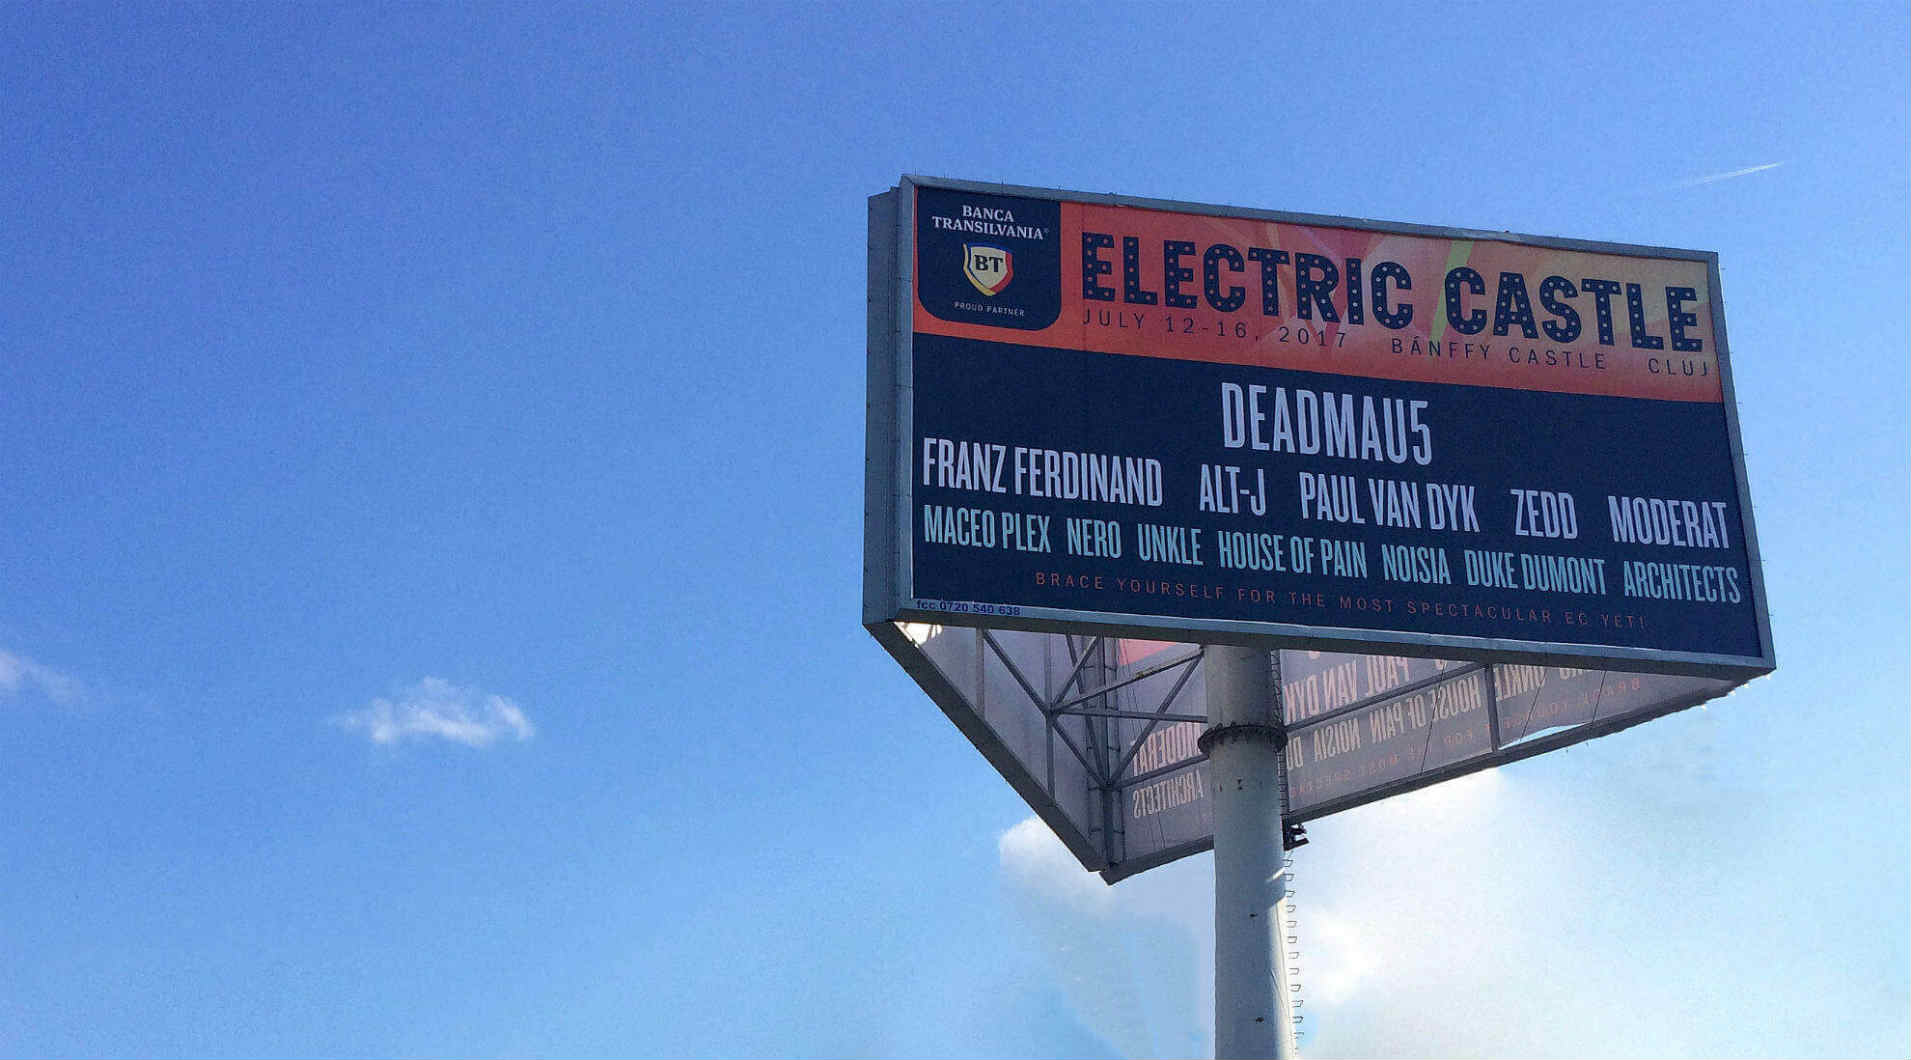 Electric Castle, Pma Invest, Pablo Sign, print outdoor